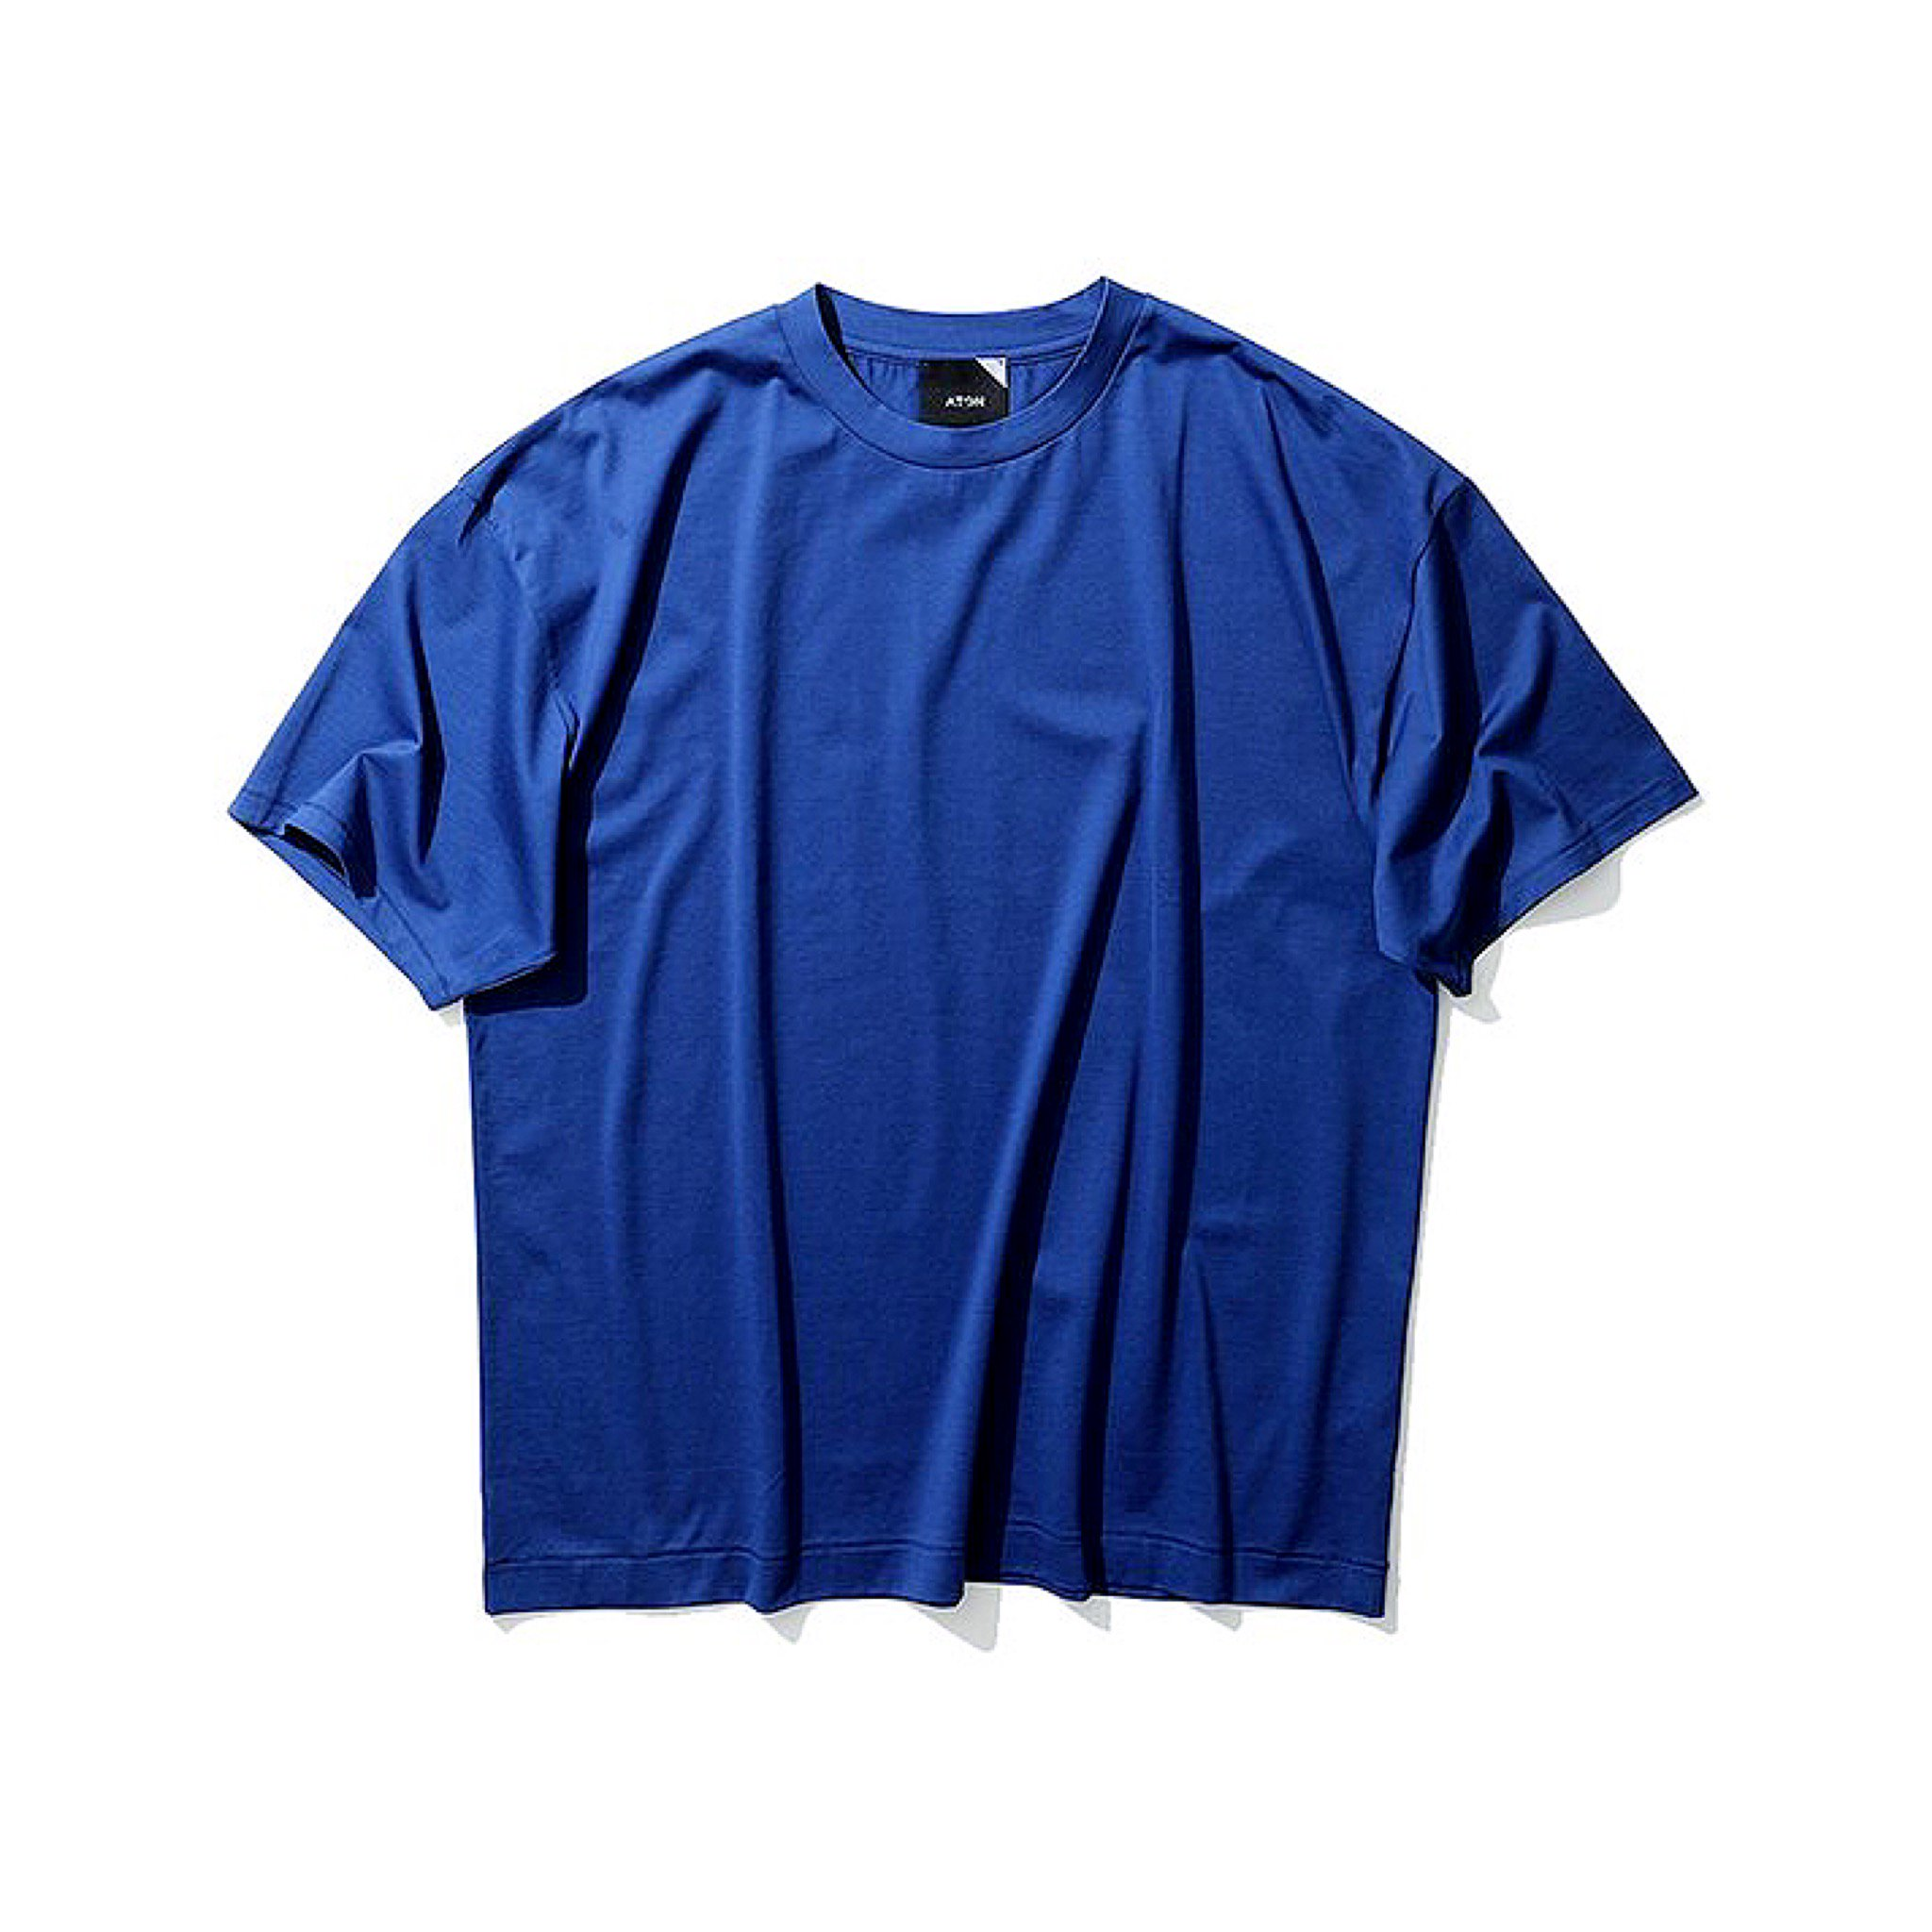 ATON-SUVIN 60/2 OVERSIZED T-SHIRTS 20ss BLUE